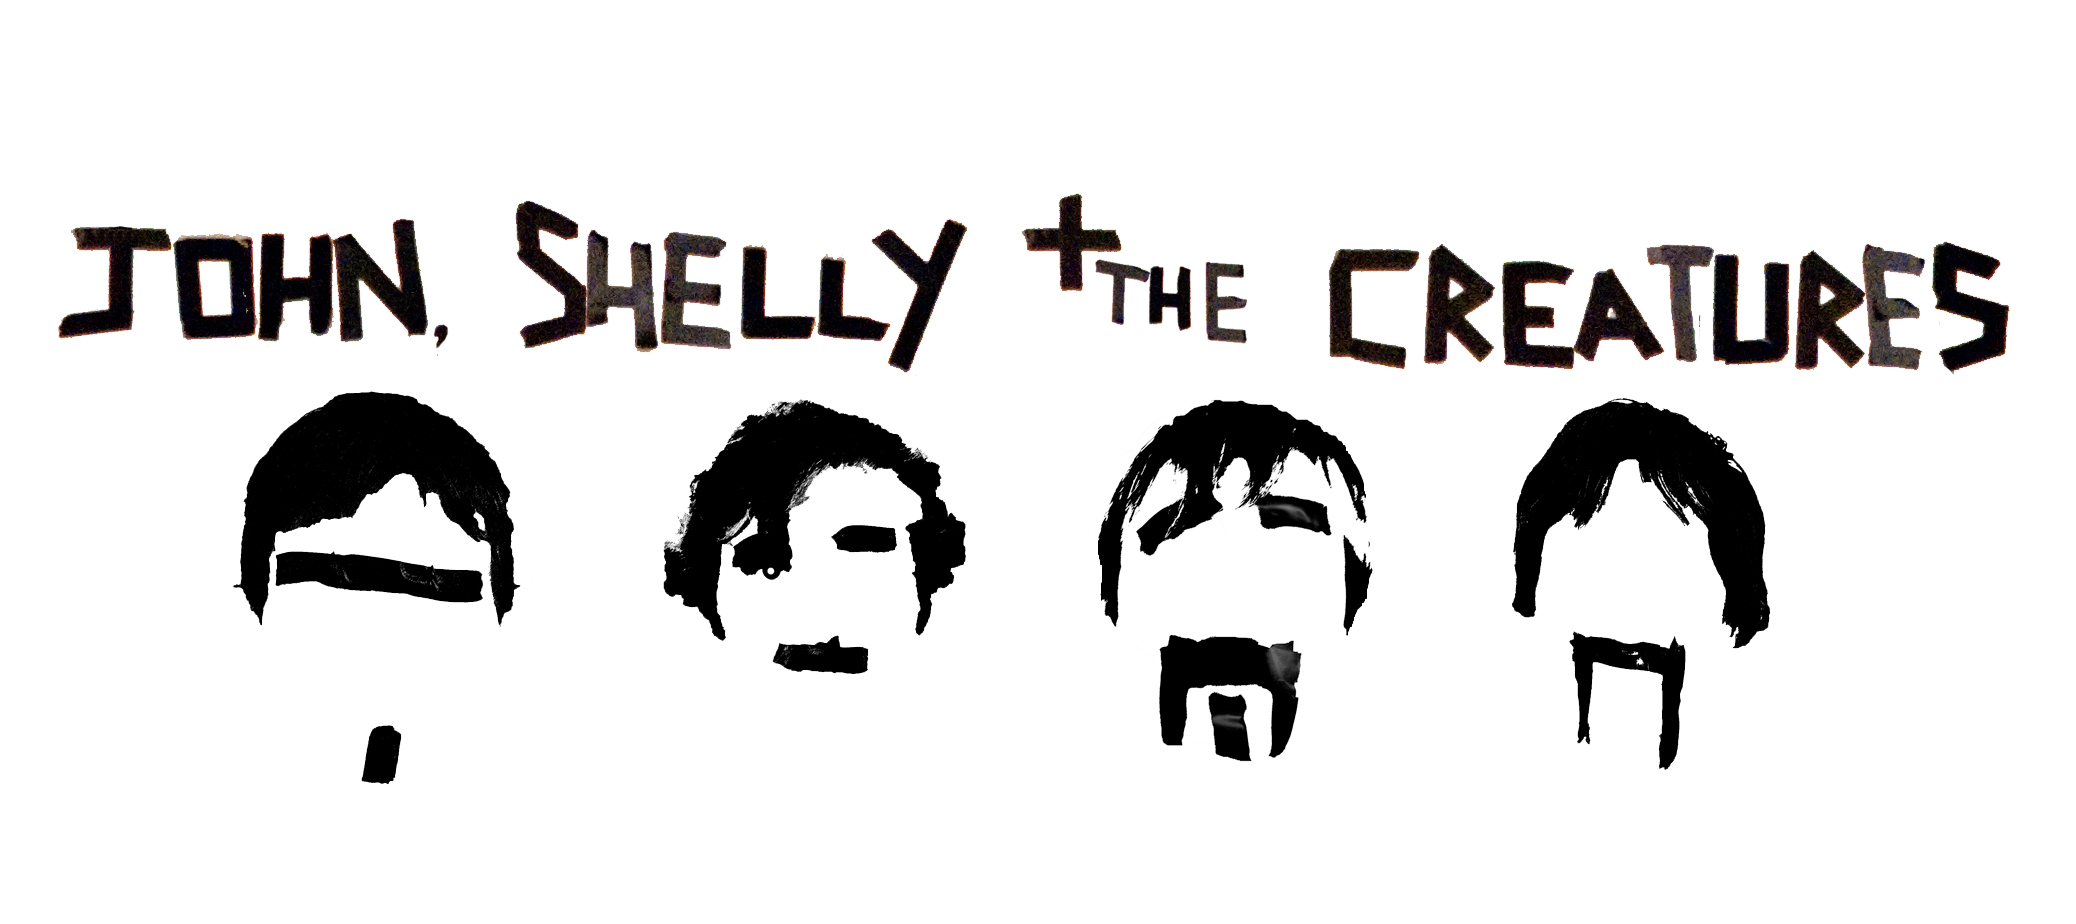 John, Shelly &amp; The Creatures logo